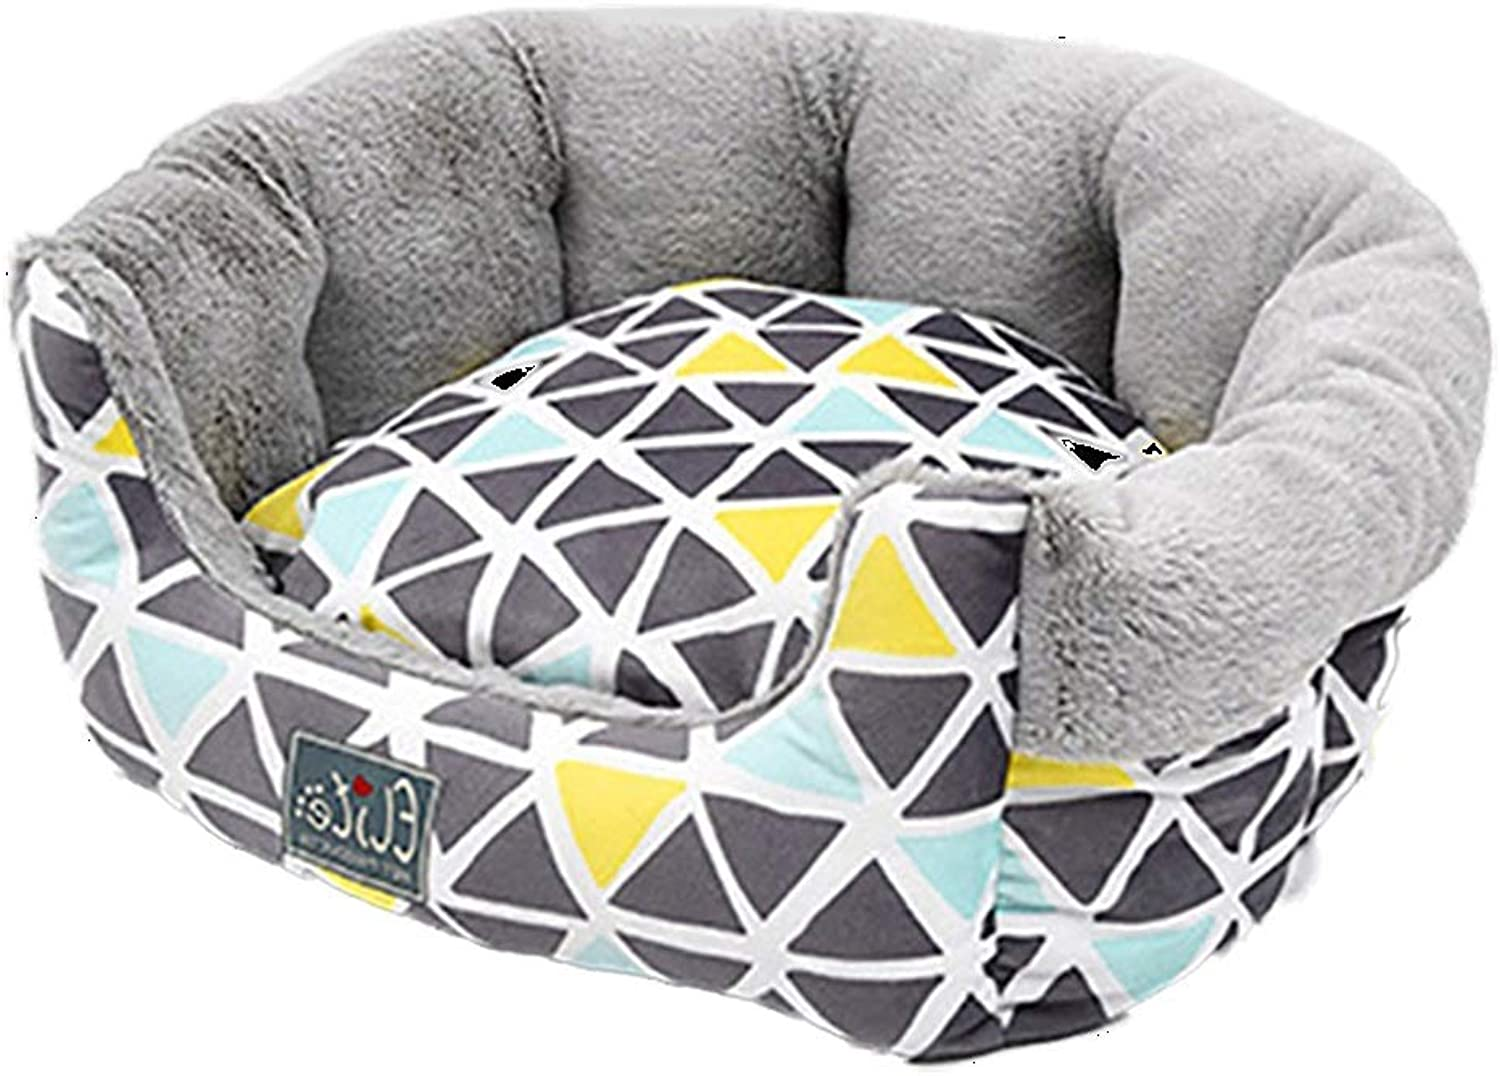 Round Pet Dog Bed Nordic Style Short Plush Fluffy Warm Soft Kennel Dog Pad Cushion Winter Washable Wear Resistant Moisture Proof (Size   S)